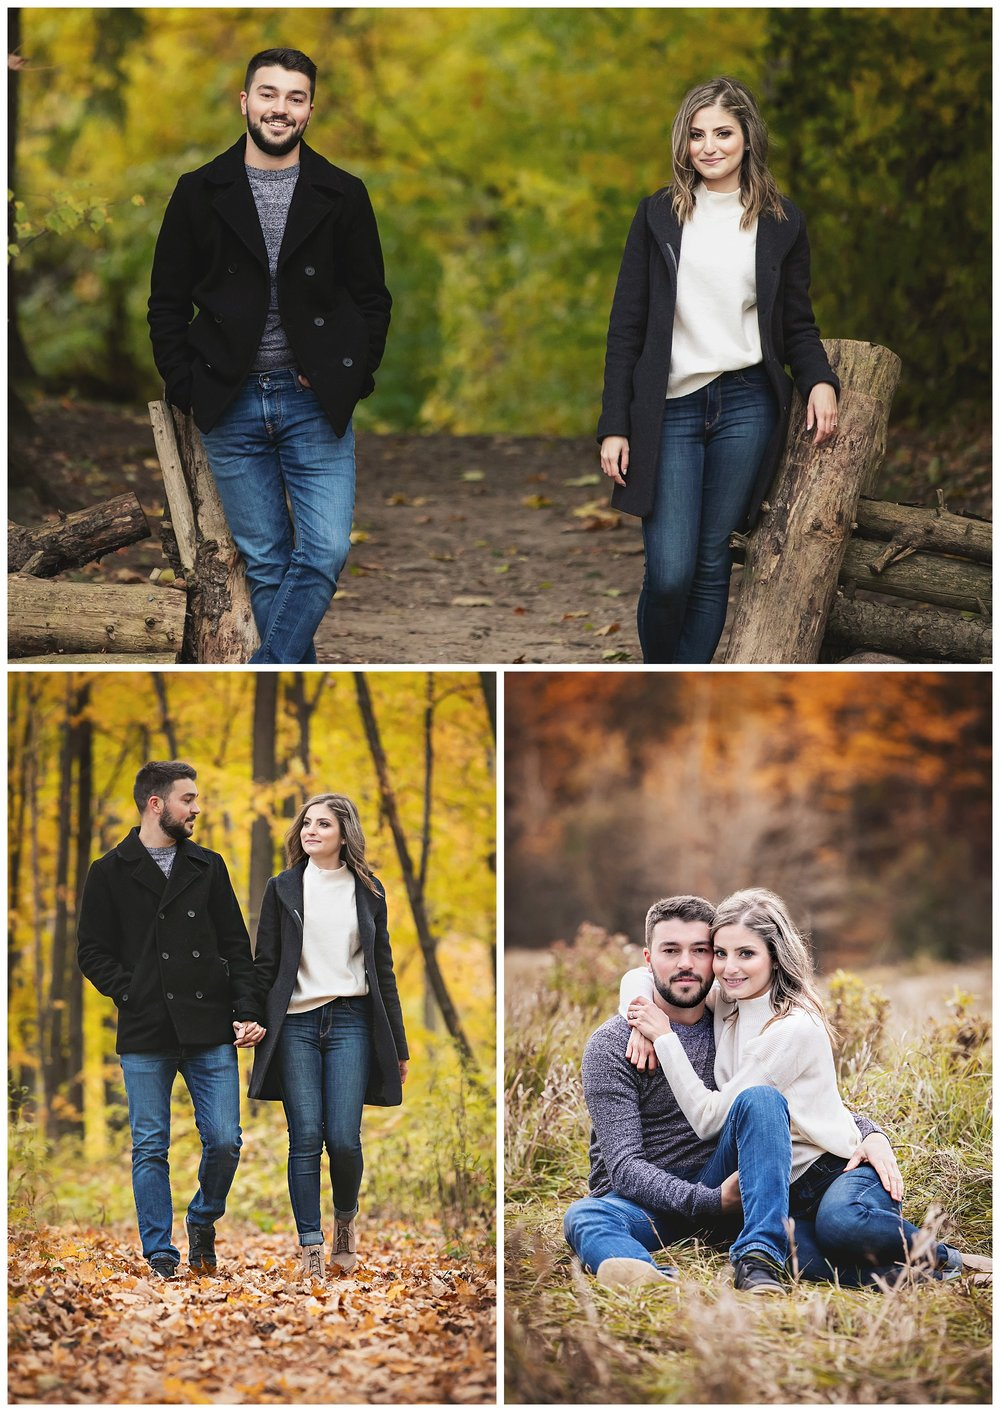 VanDaele-Russell-Photography-Scotsdale-Farm-Engagement_0251.jpg